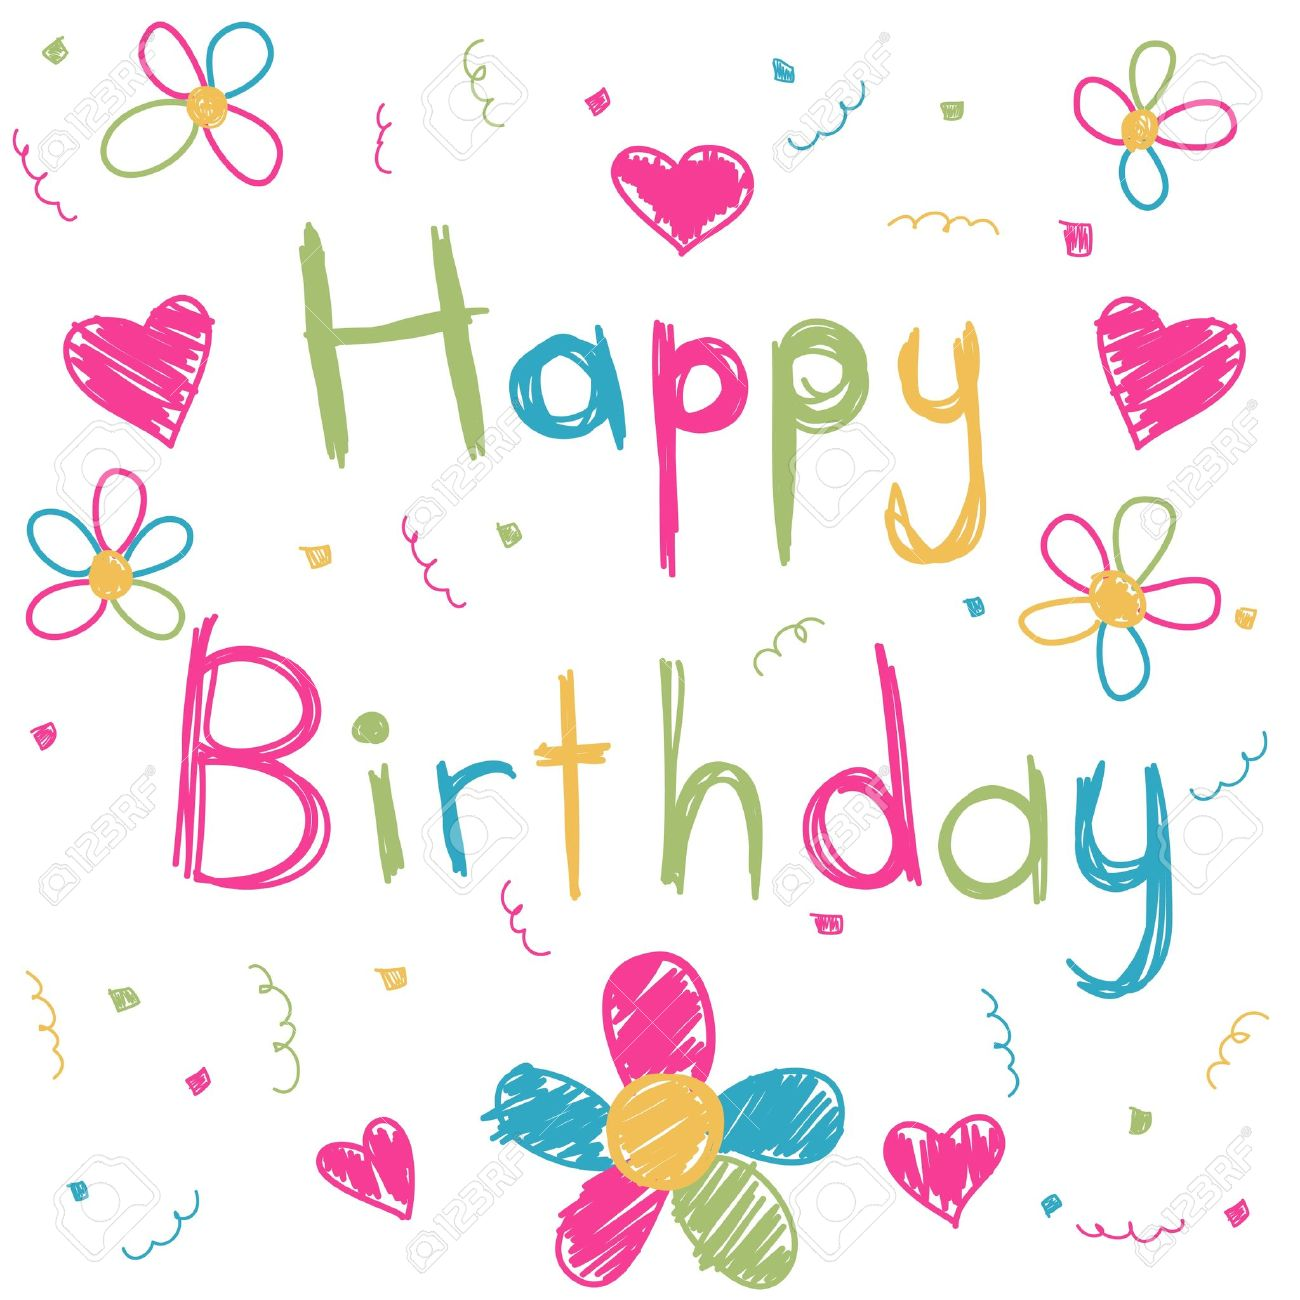 Happy Birthday Card Royalty Free Cliparts Vectors And – Birthday Cards for Girl